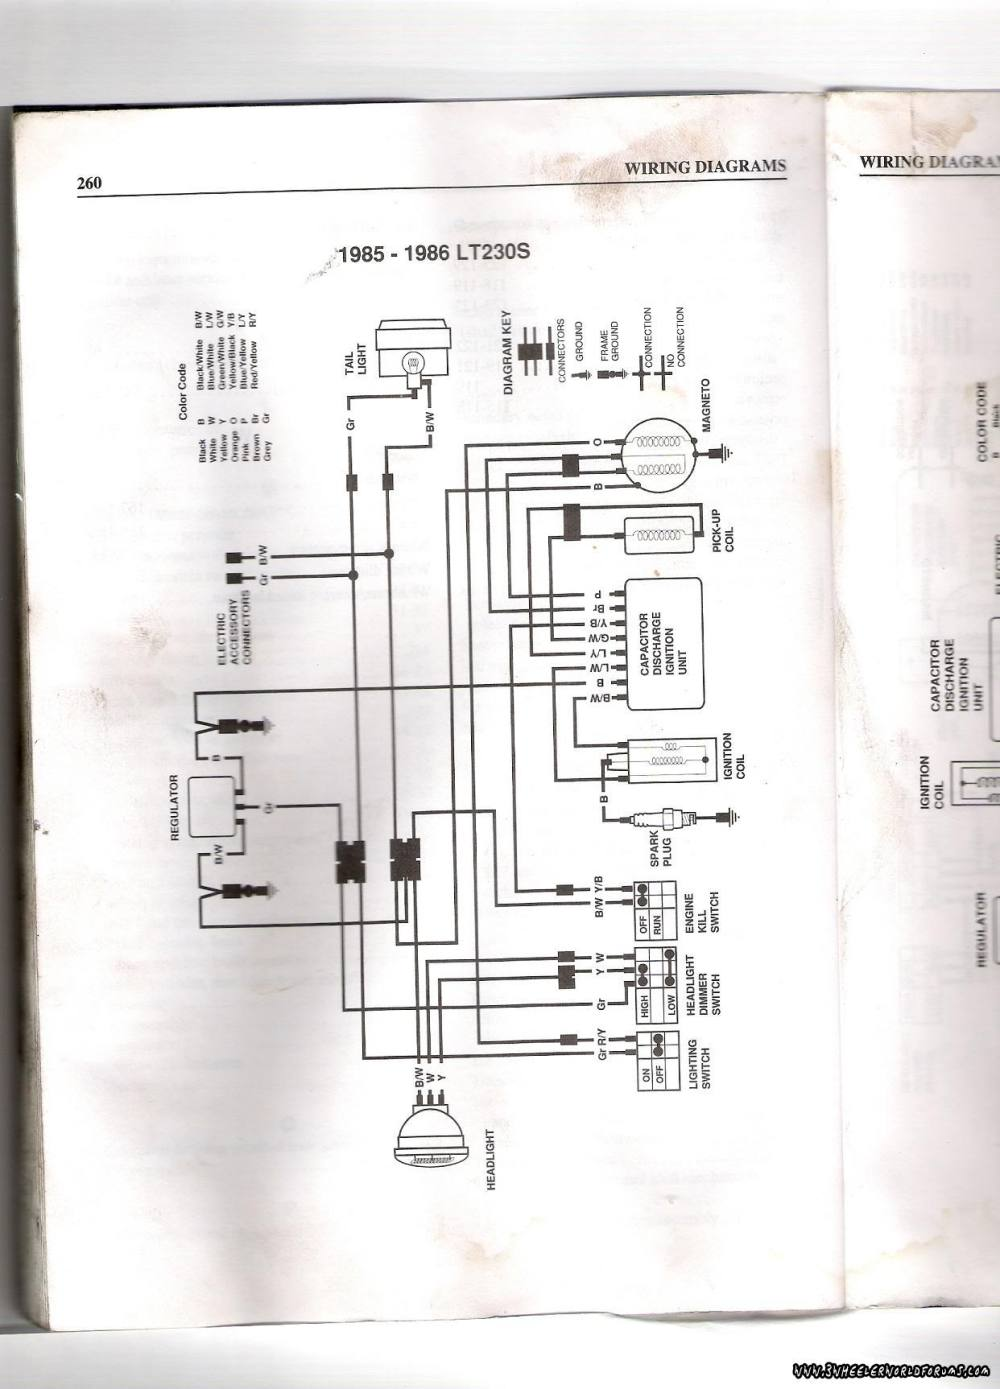 medium resolution of suzuki lt 300e wiring wiring diagram used suzuki 300 outboard wiring diagram suzuki 300 wiring diagram